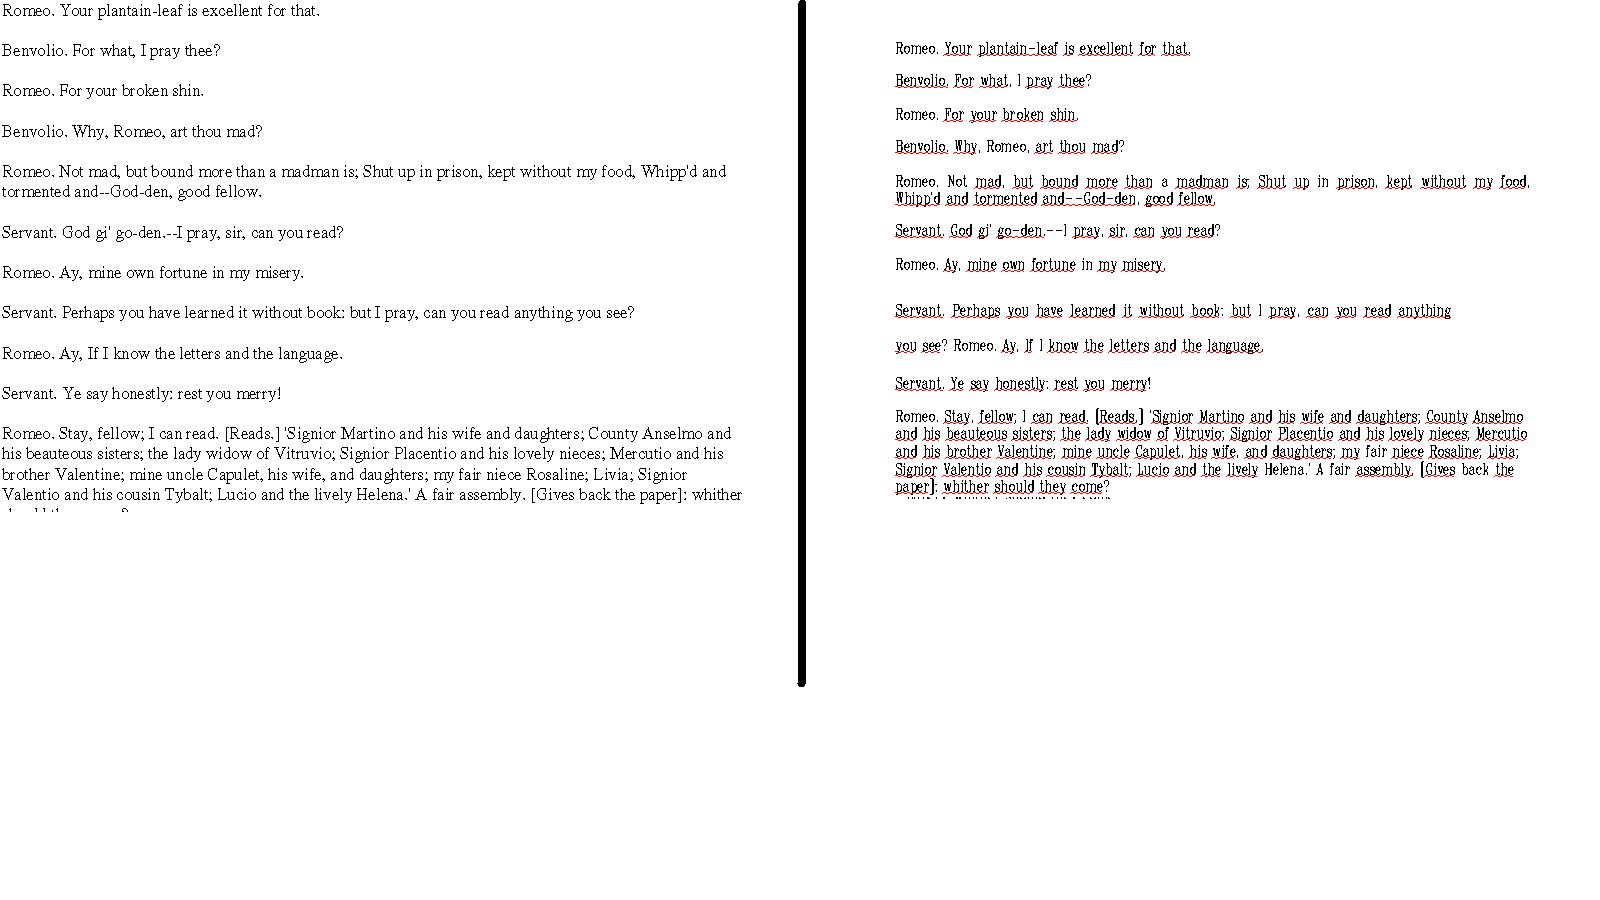 Original PDF and resulting DOC texts